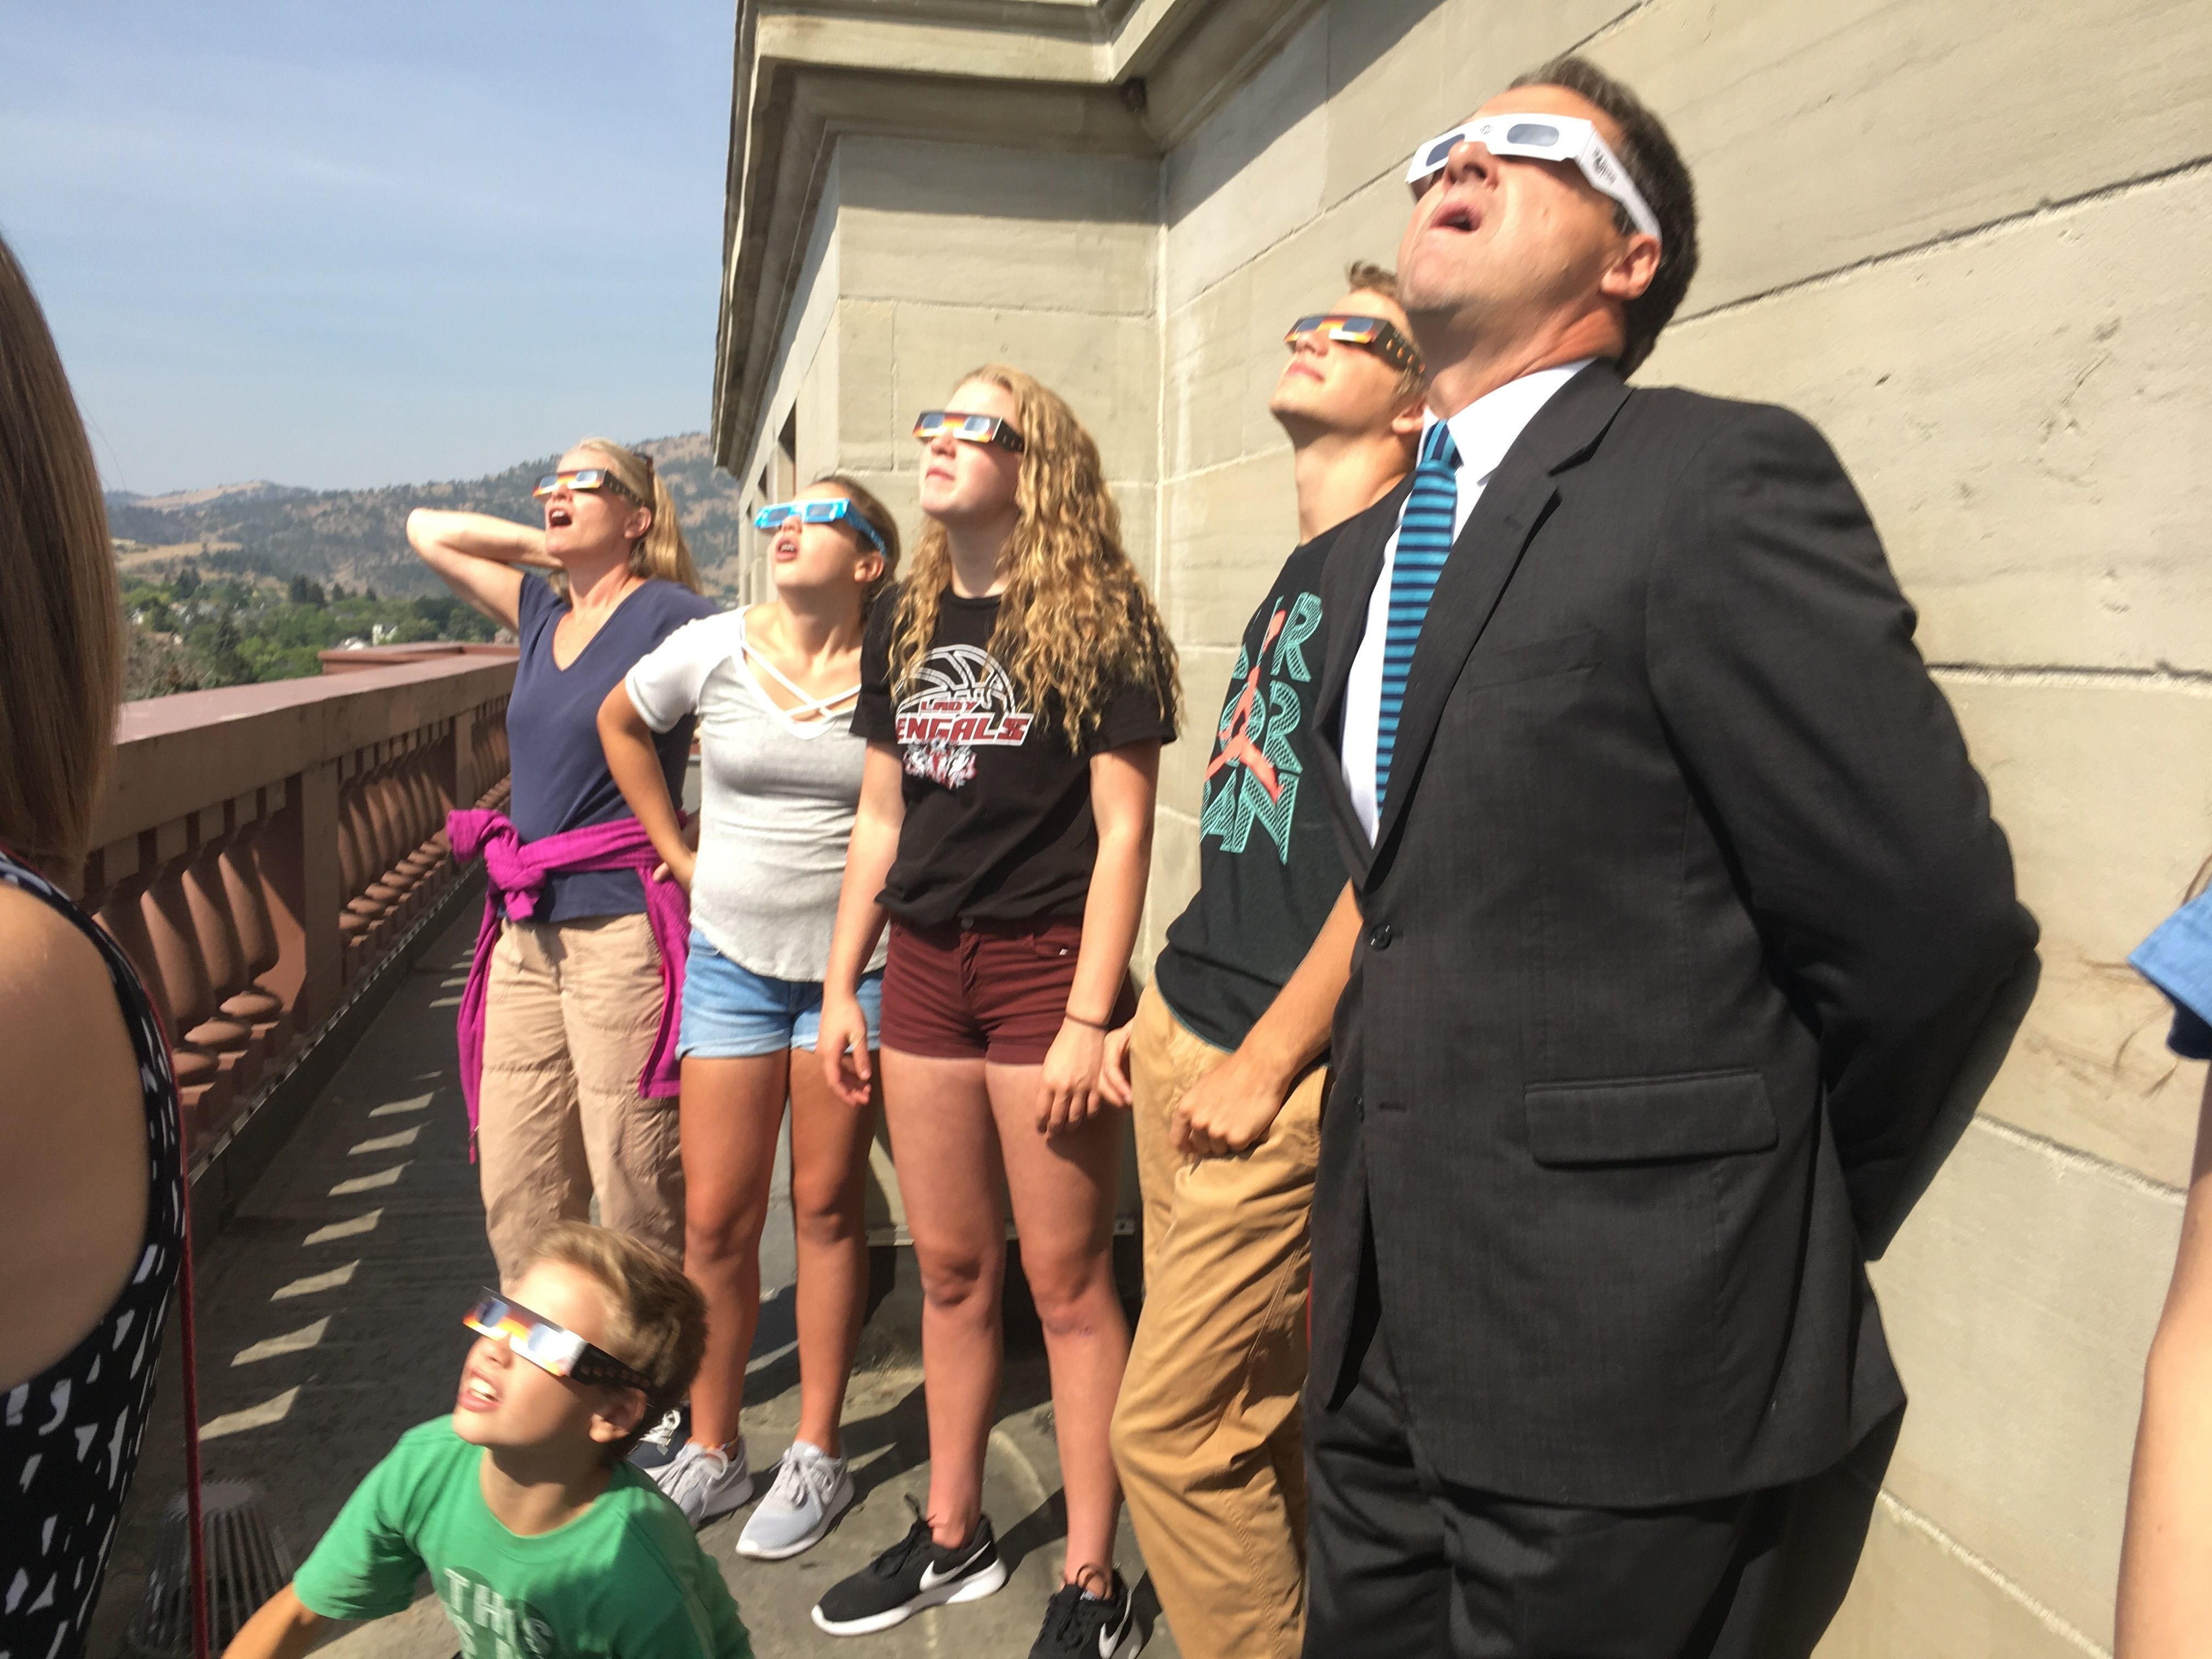 Governor Steve Bullock watches the solar eclipse with his family and others from the dome of the state Capitol building.  Marissa Perry Governor Steve Bullock watches the solar eclipse with his family and others from the dome of the state capitol building on Monday.